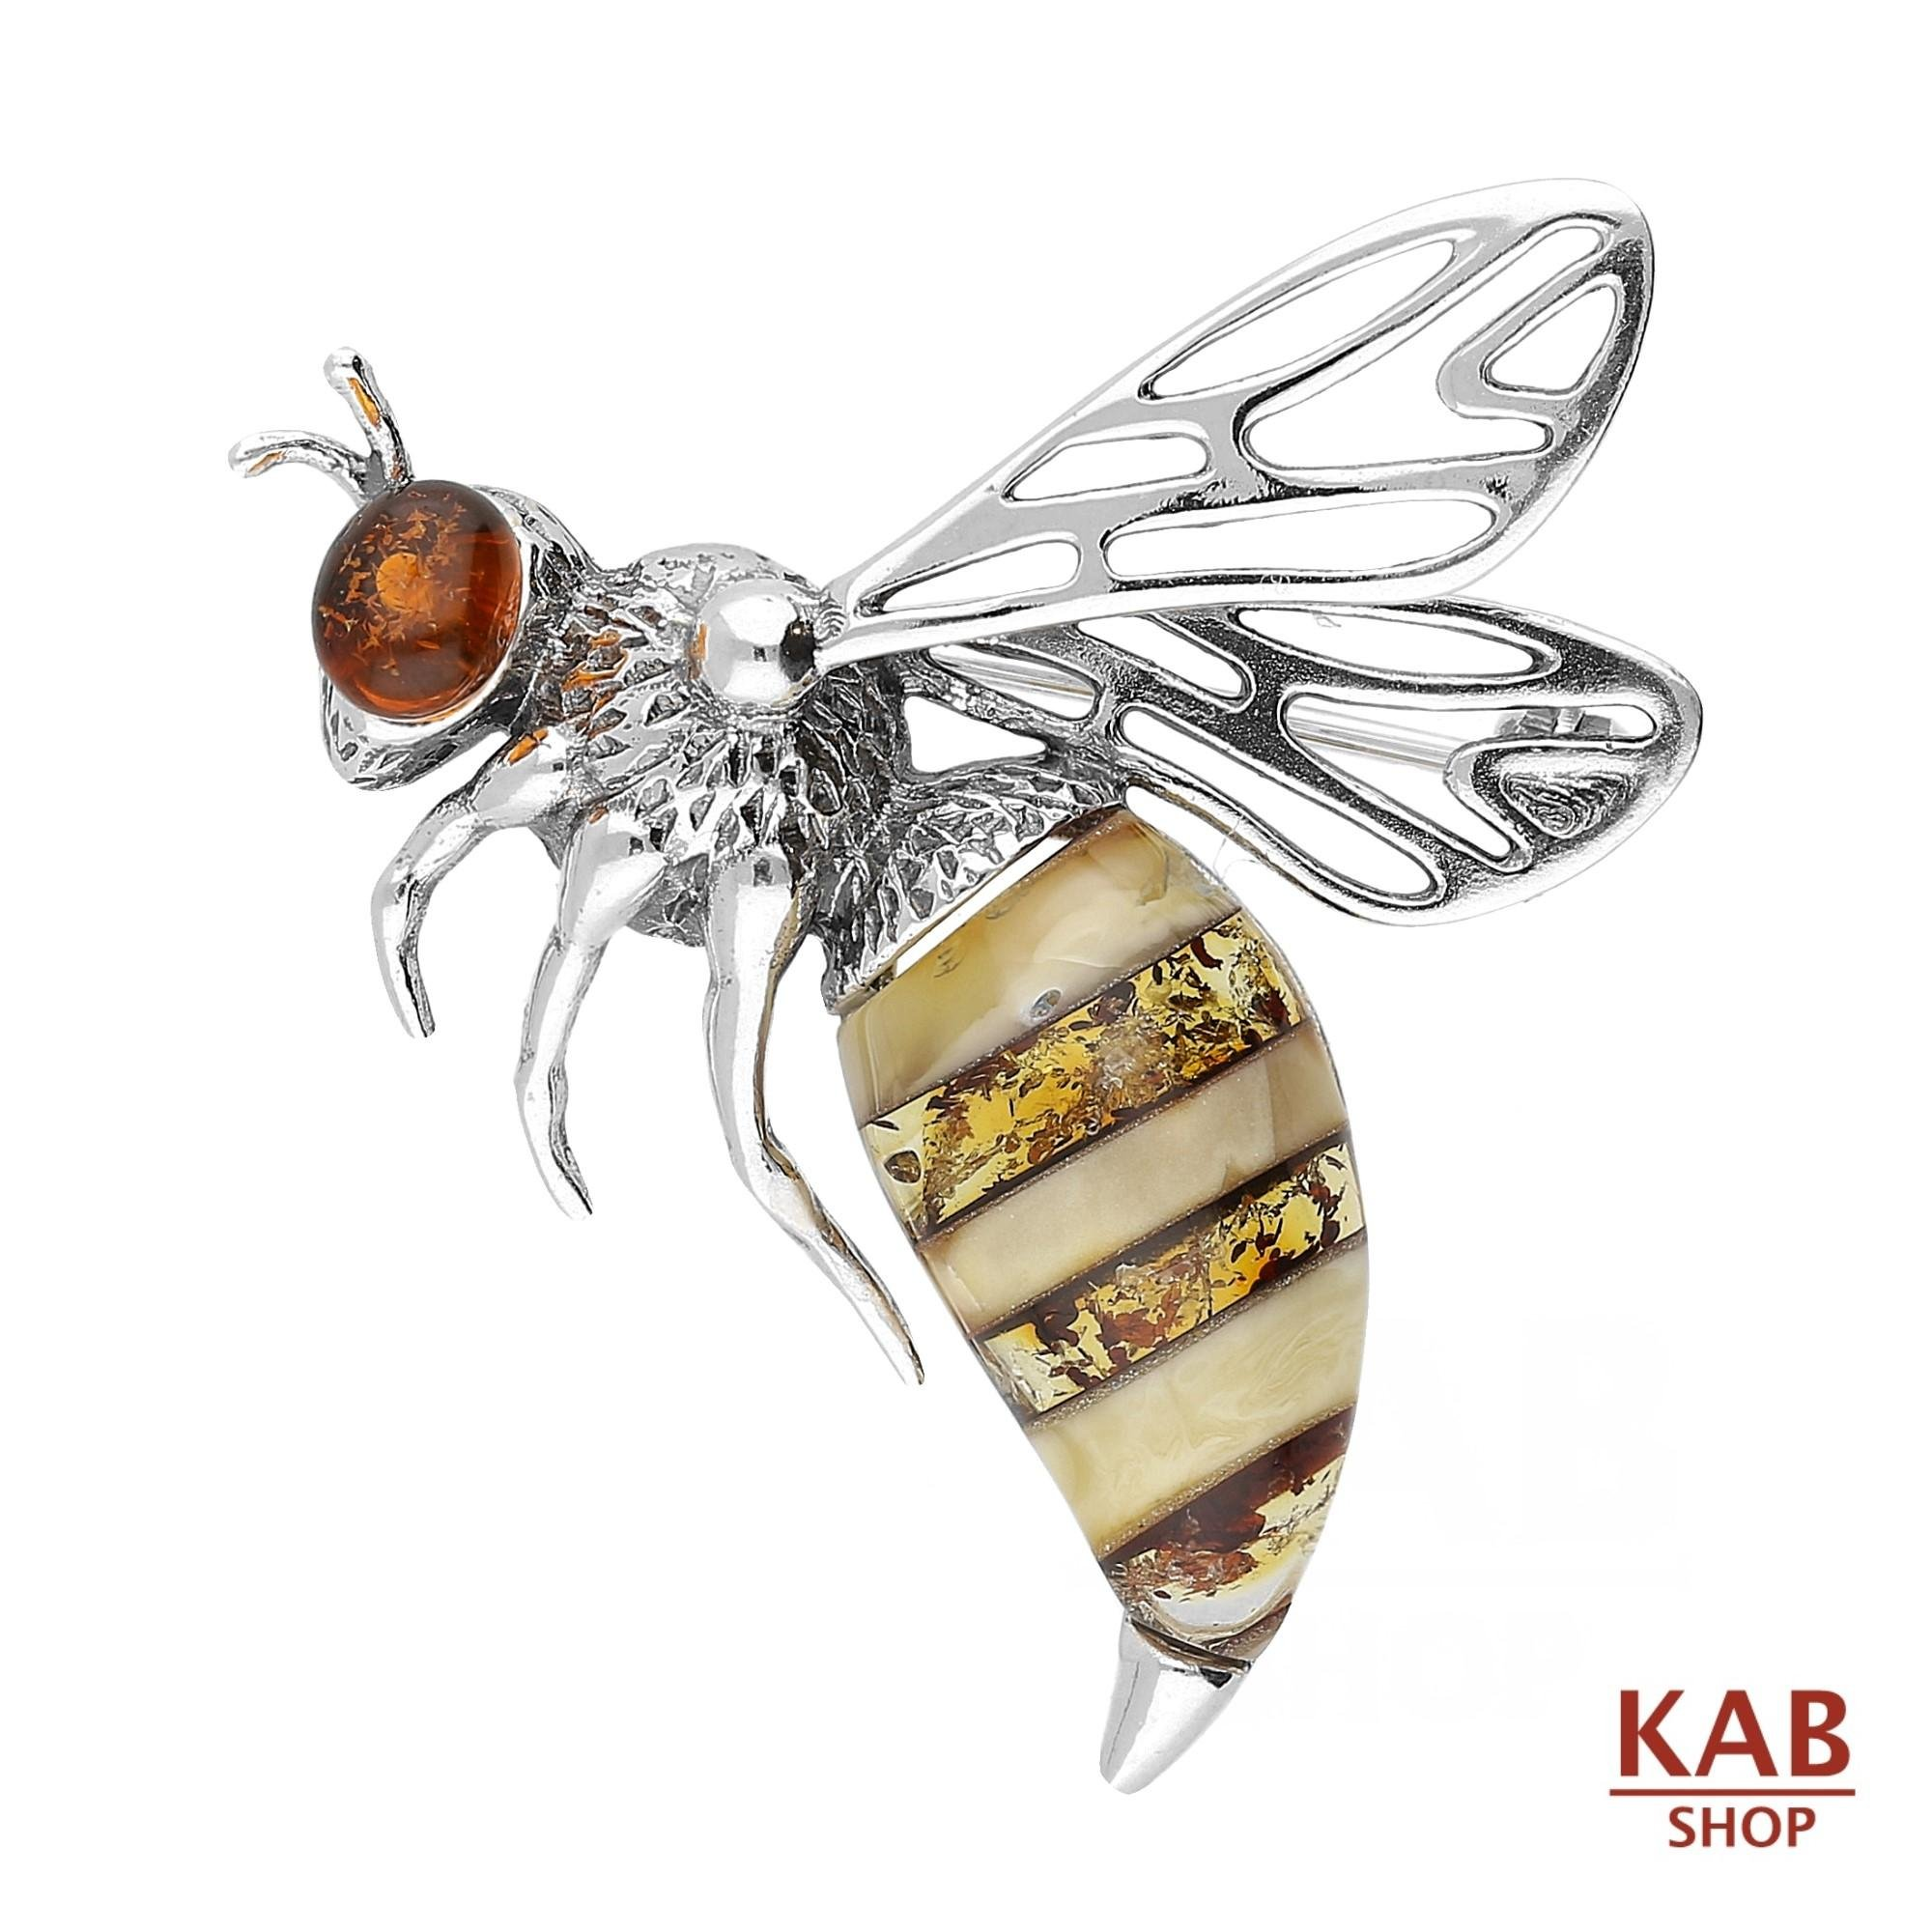 BALTIC AMBER STERLING SILVER 925 JEWELRY BEE BROOCH/PIN, KAB-166 by KAB (Image #3)